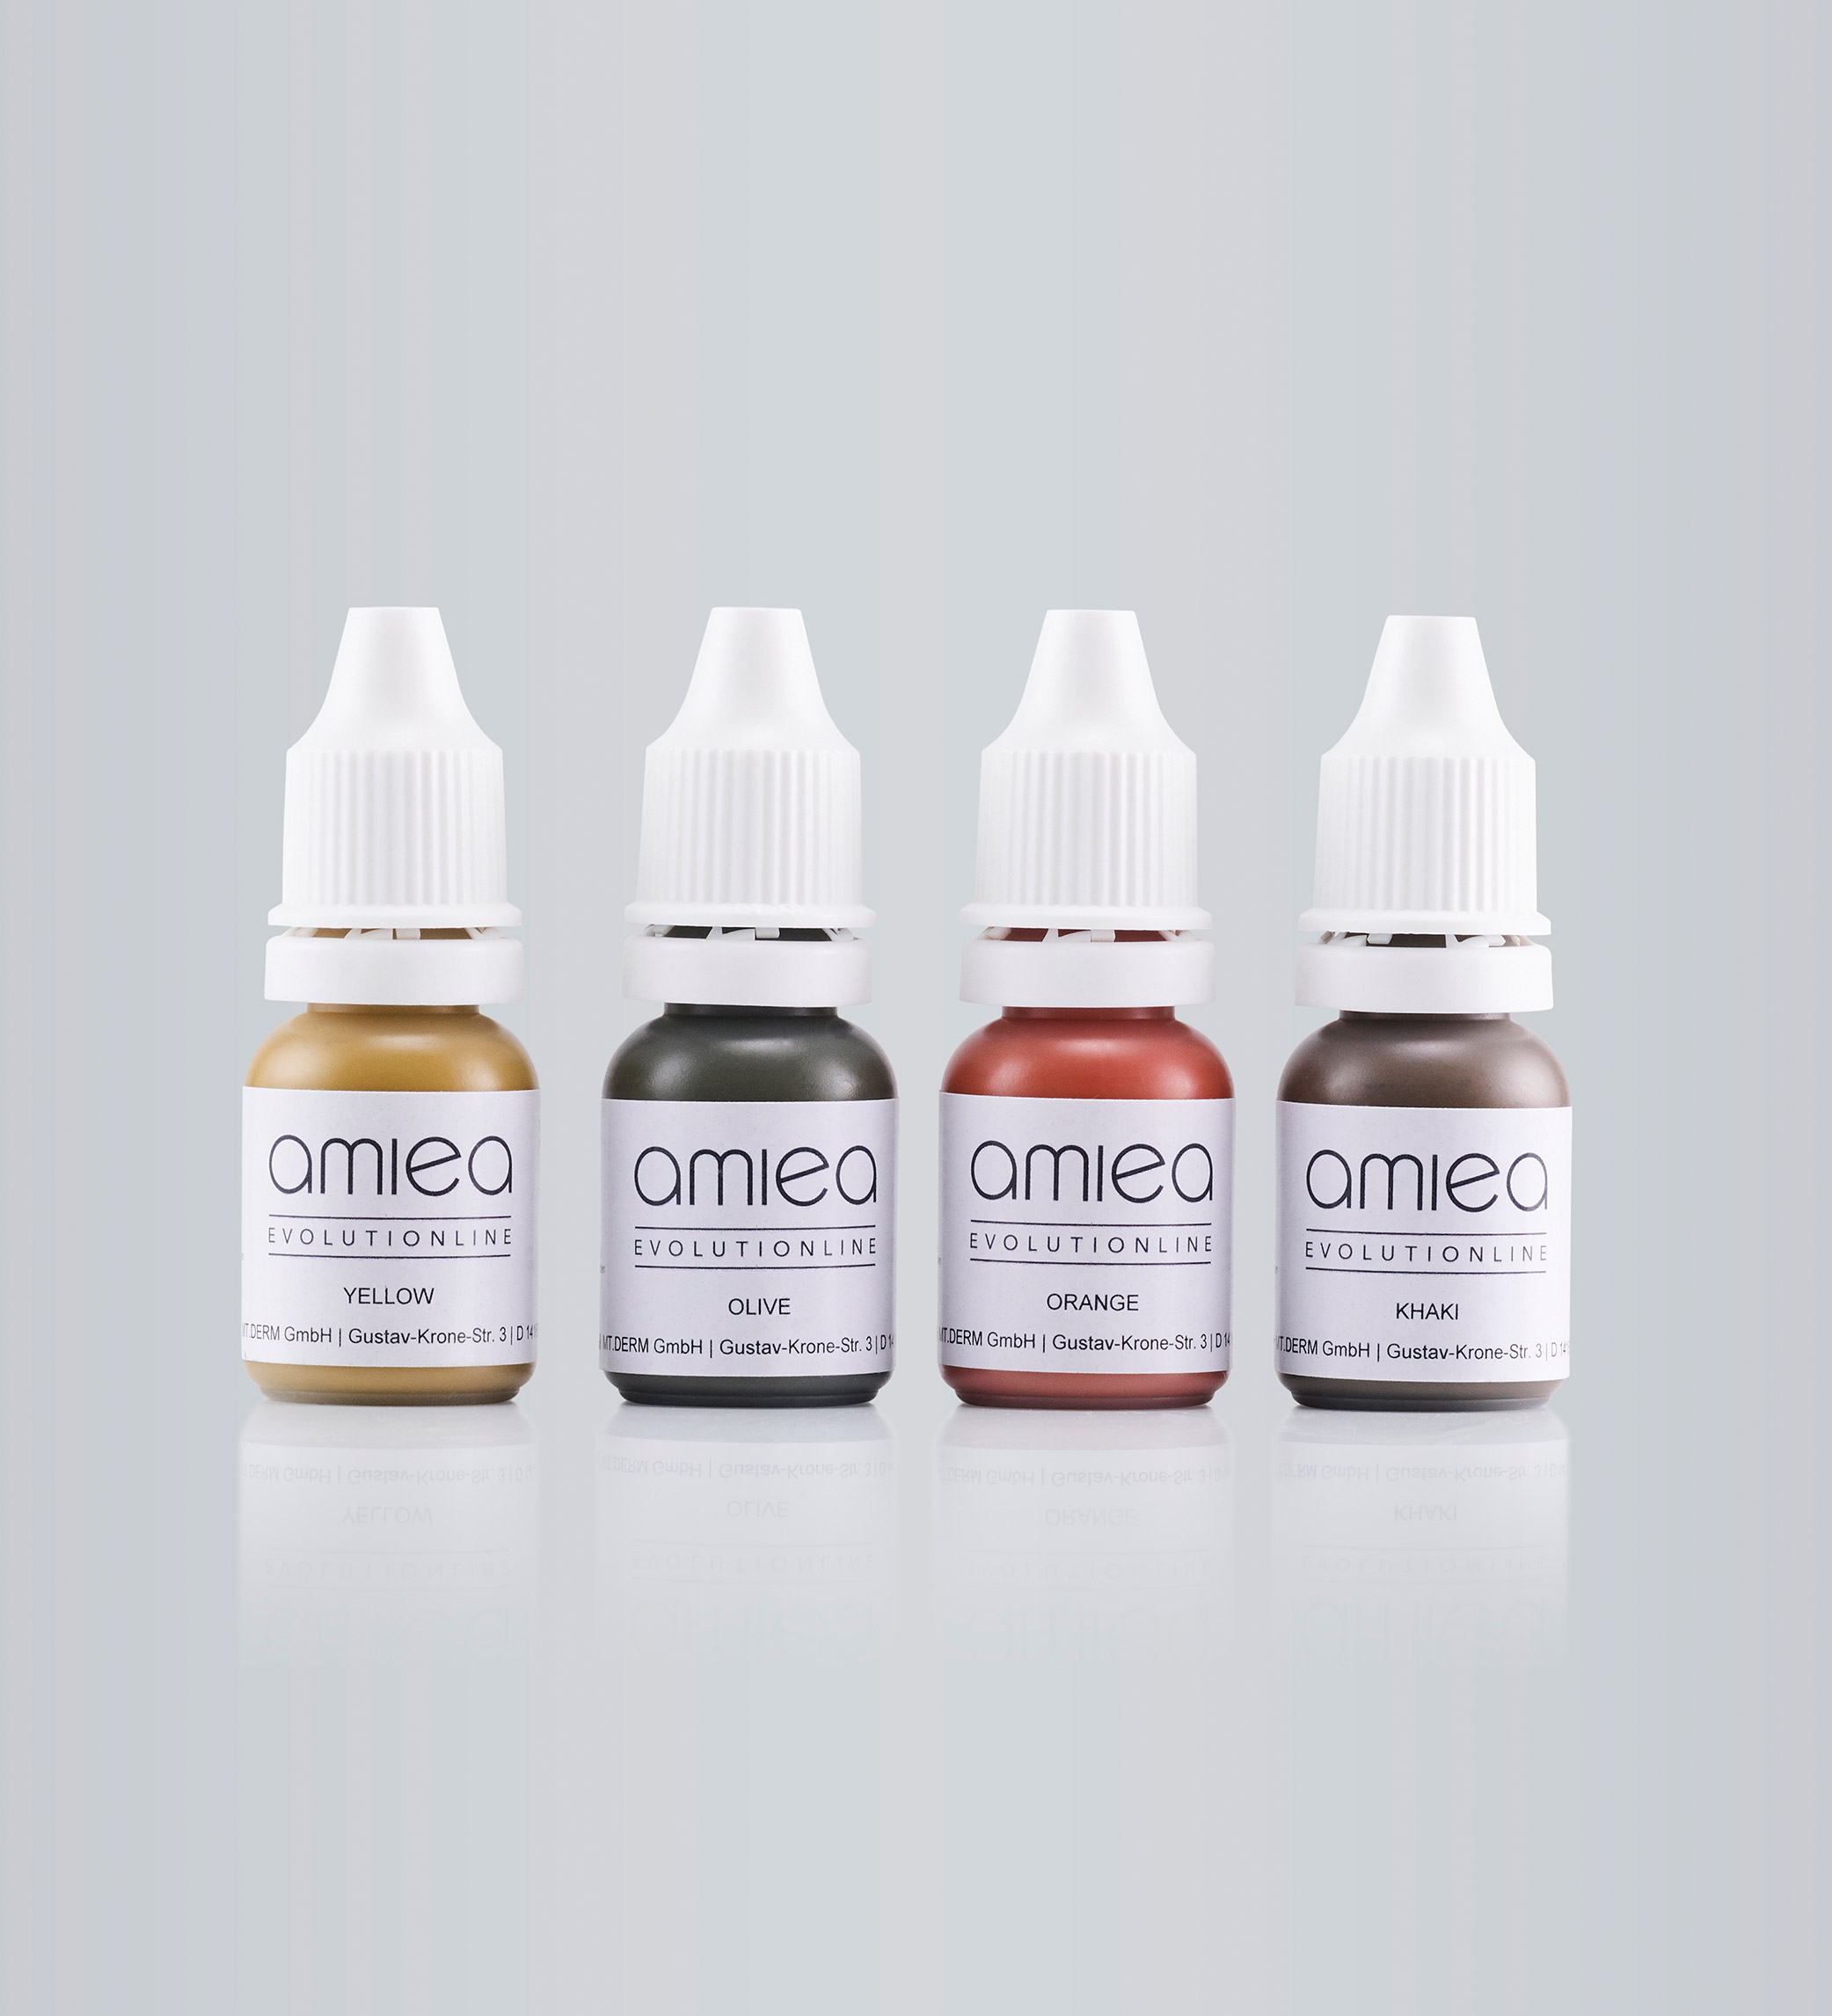 Four bottles with PMU colors of amiea Evolutionline